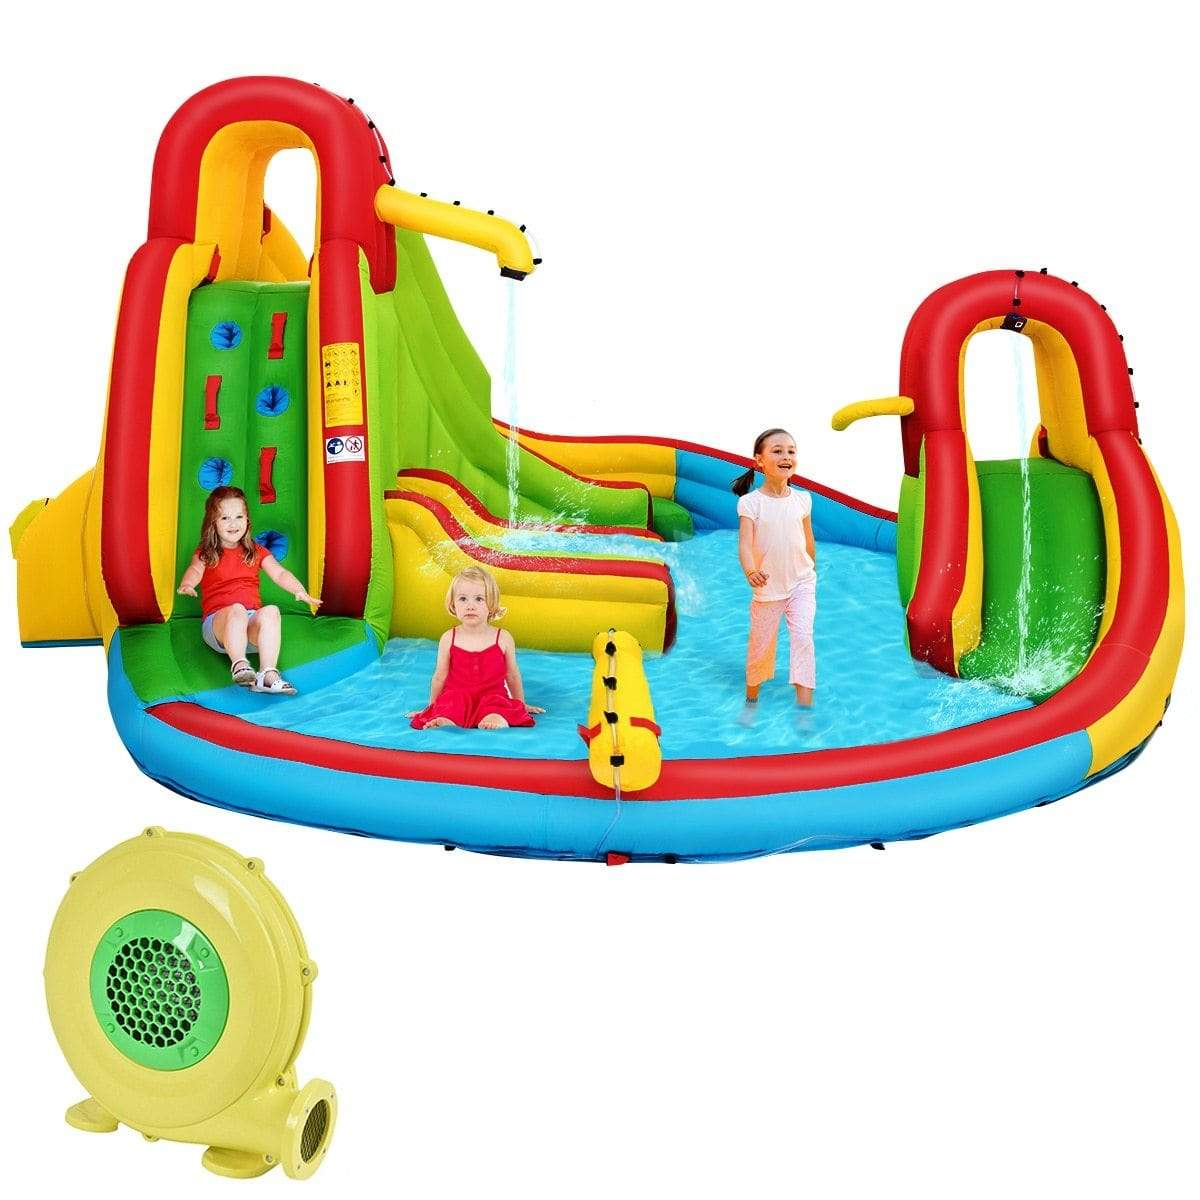 eprolo Kids Inflatable Water Slide Bounce Park Splash Pool w/Water Cannon & 680W Blower